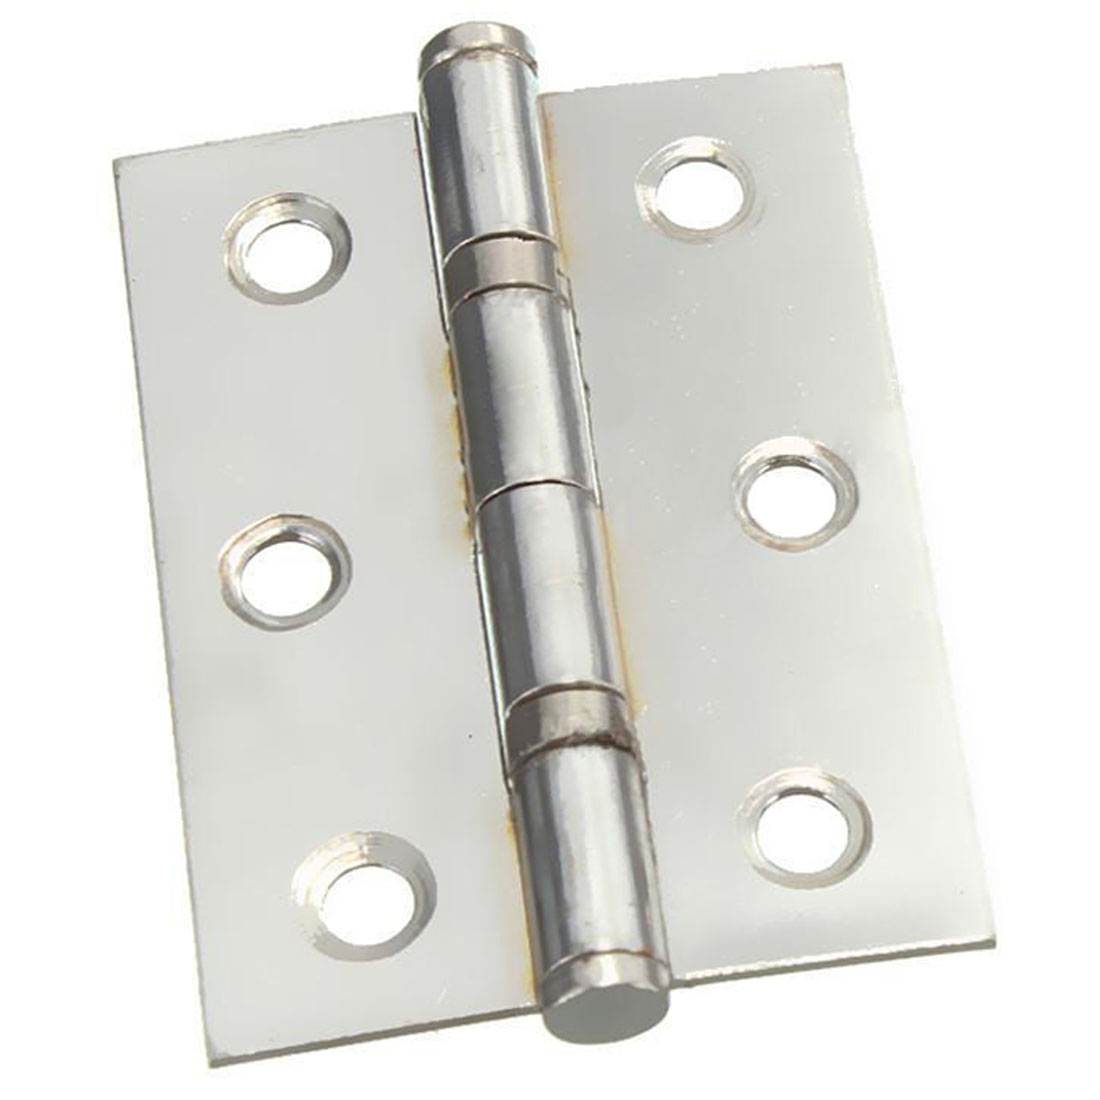 Hot Sale 8x hinges Furniture hinges Door hinge stainless steel